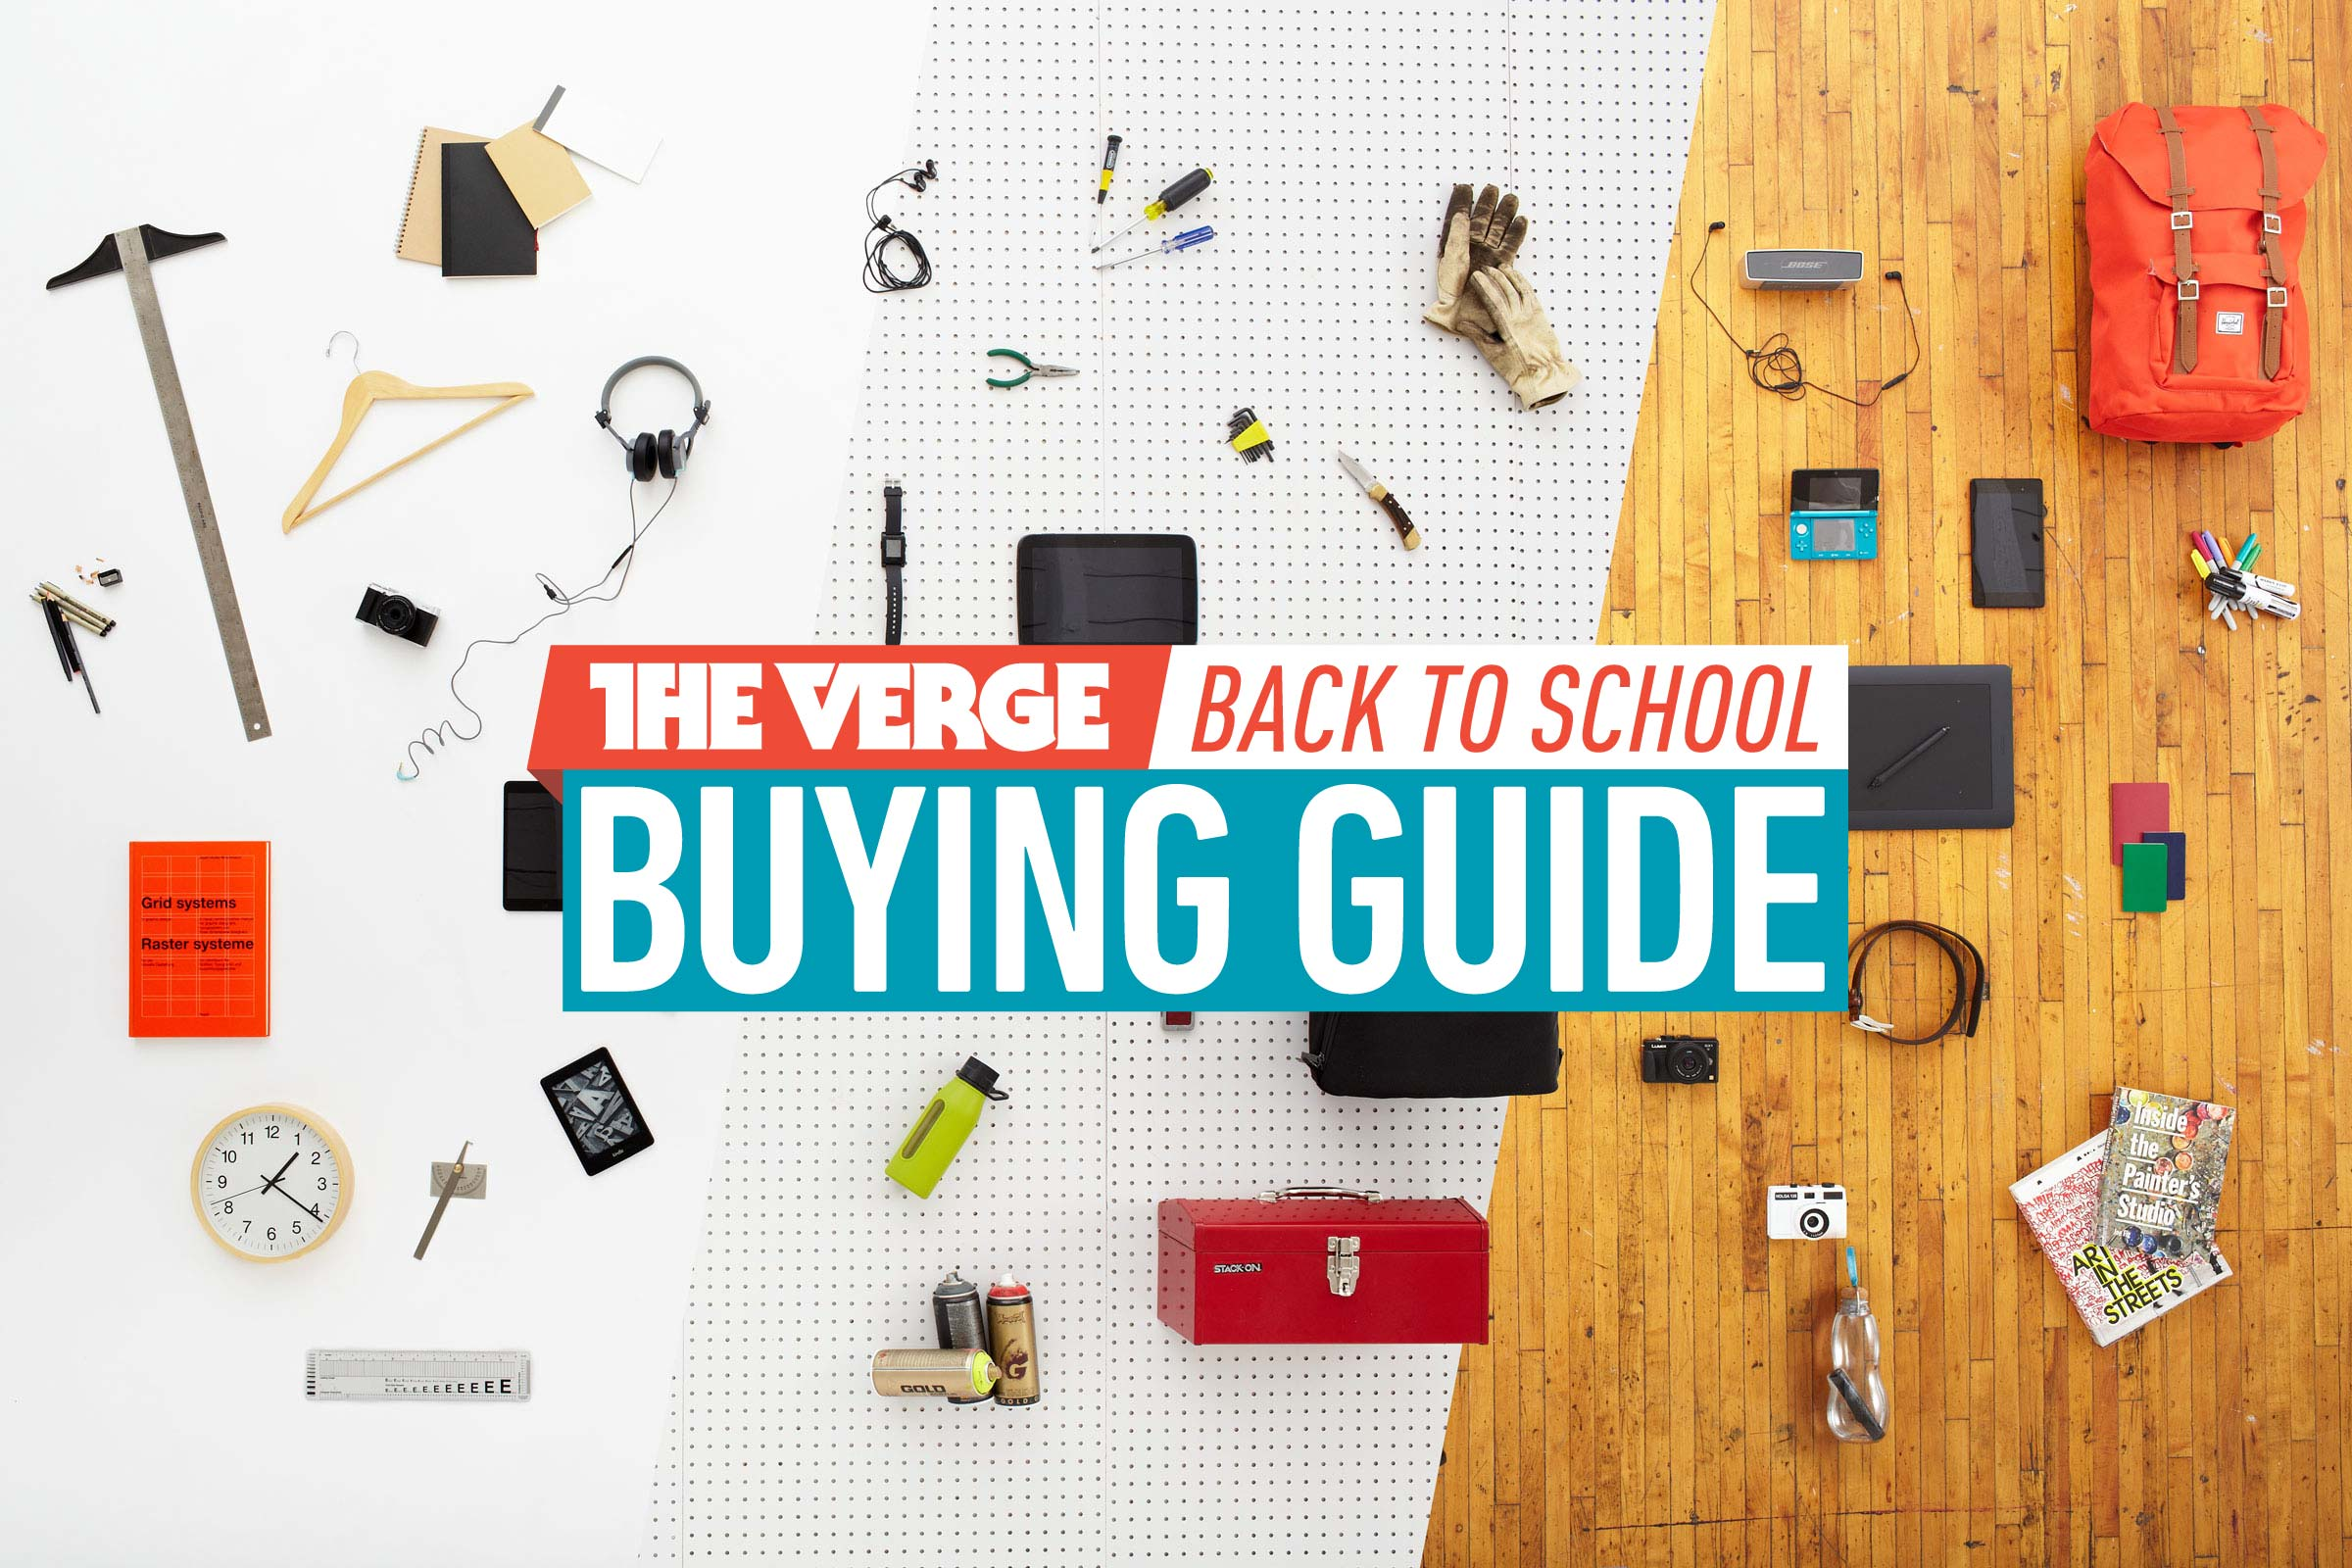 The Verge Back to School Buying Guide